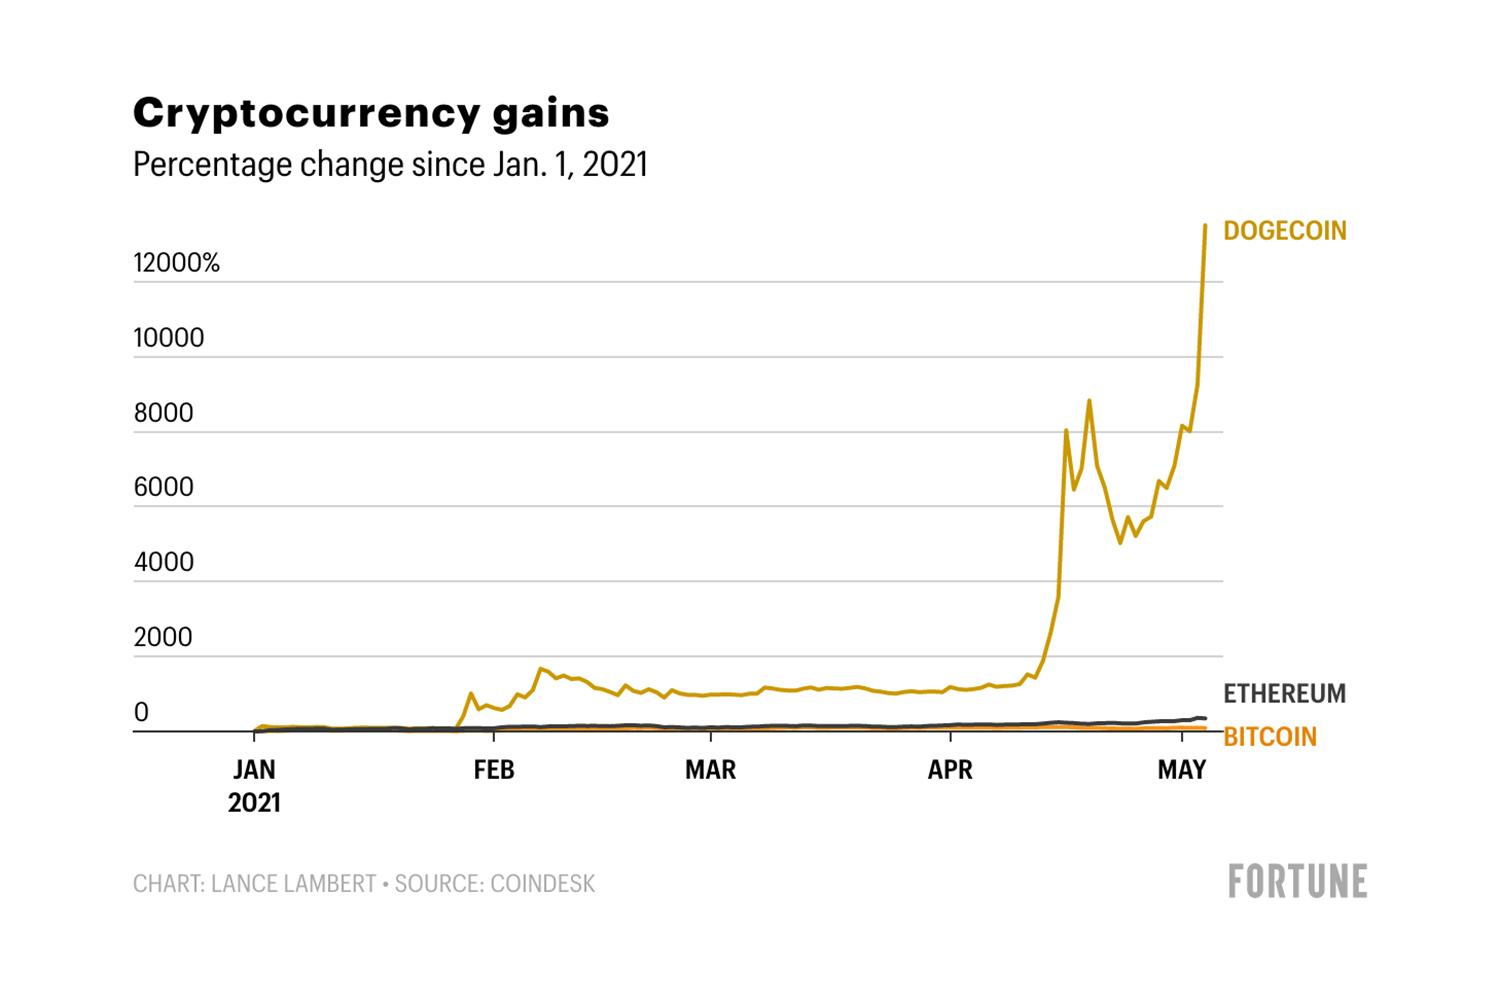 Bitcoin, Ethereum, or Dogecoin? Here's the crypto with the largest gain this year—and it isn't even close